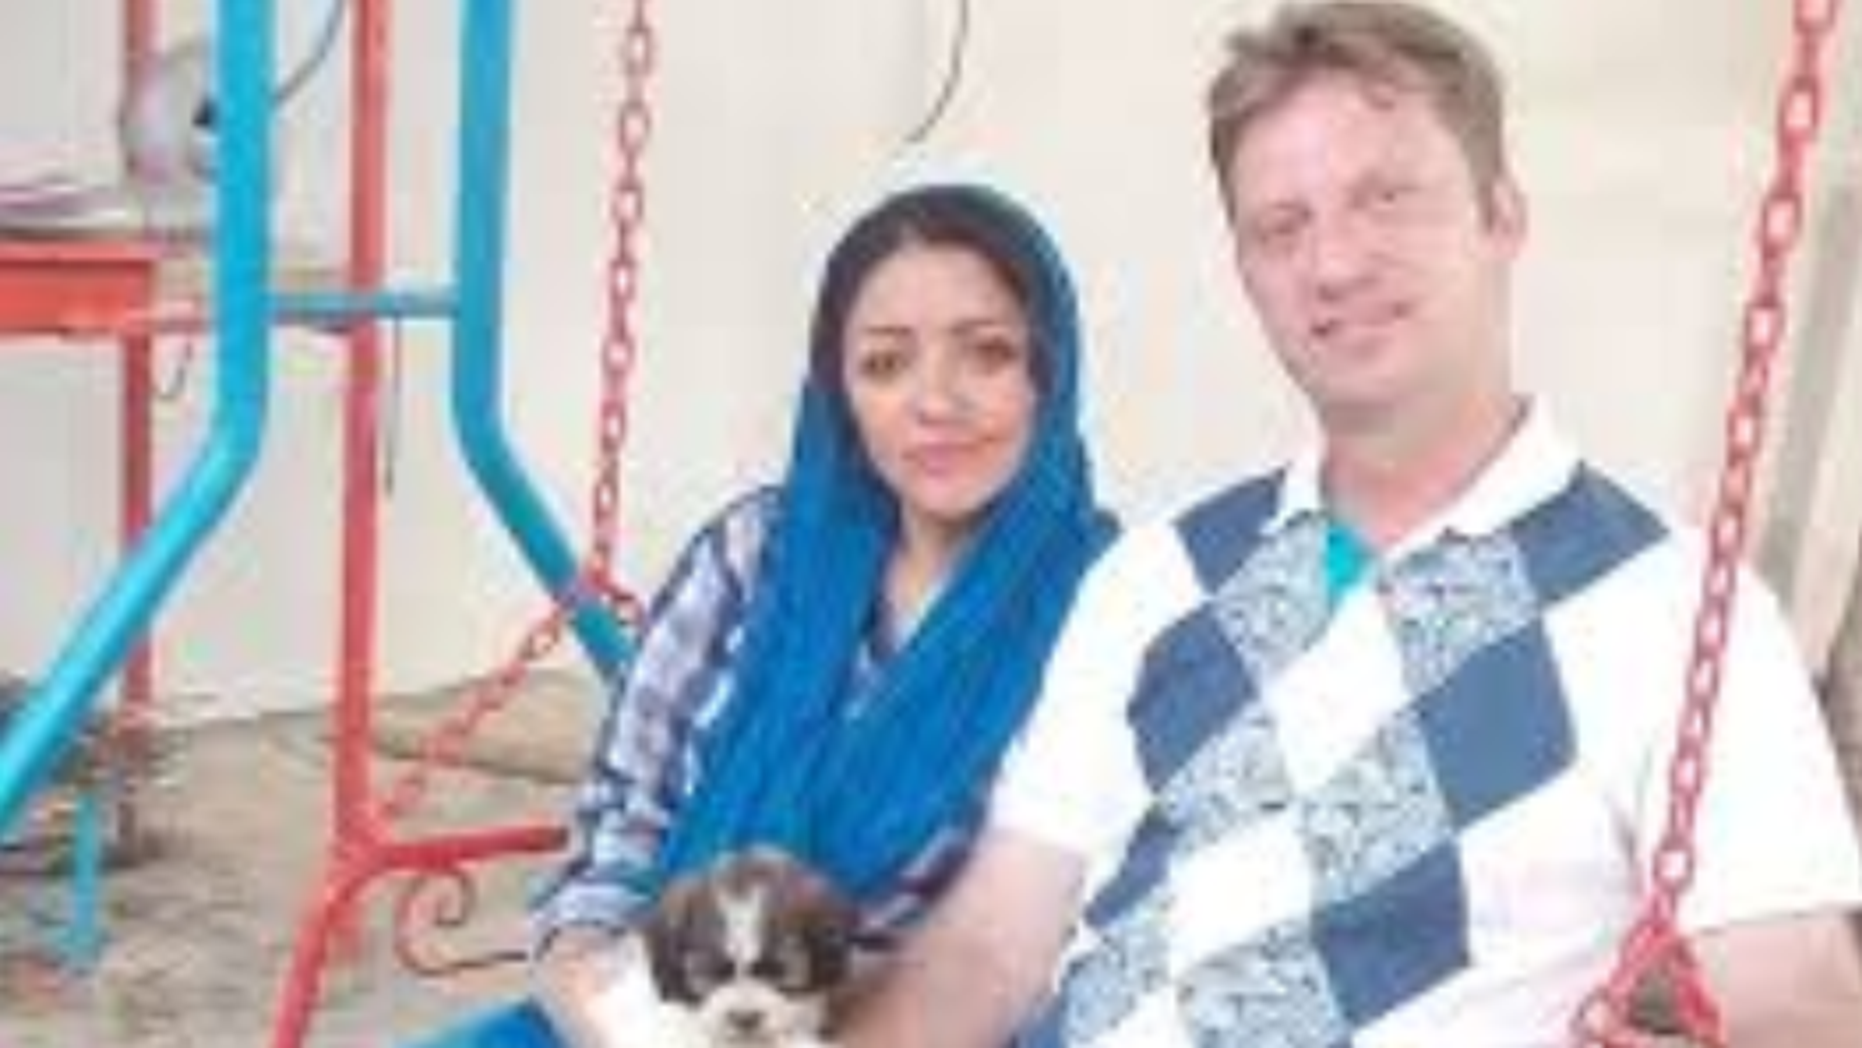 American Navy veteran Michael R. White 46 was detained in Iran after visiting his Iranian girlfriend whose identity remains unknown his mother said